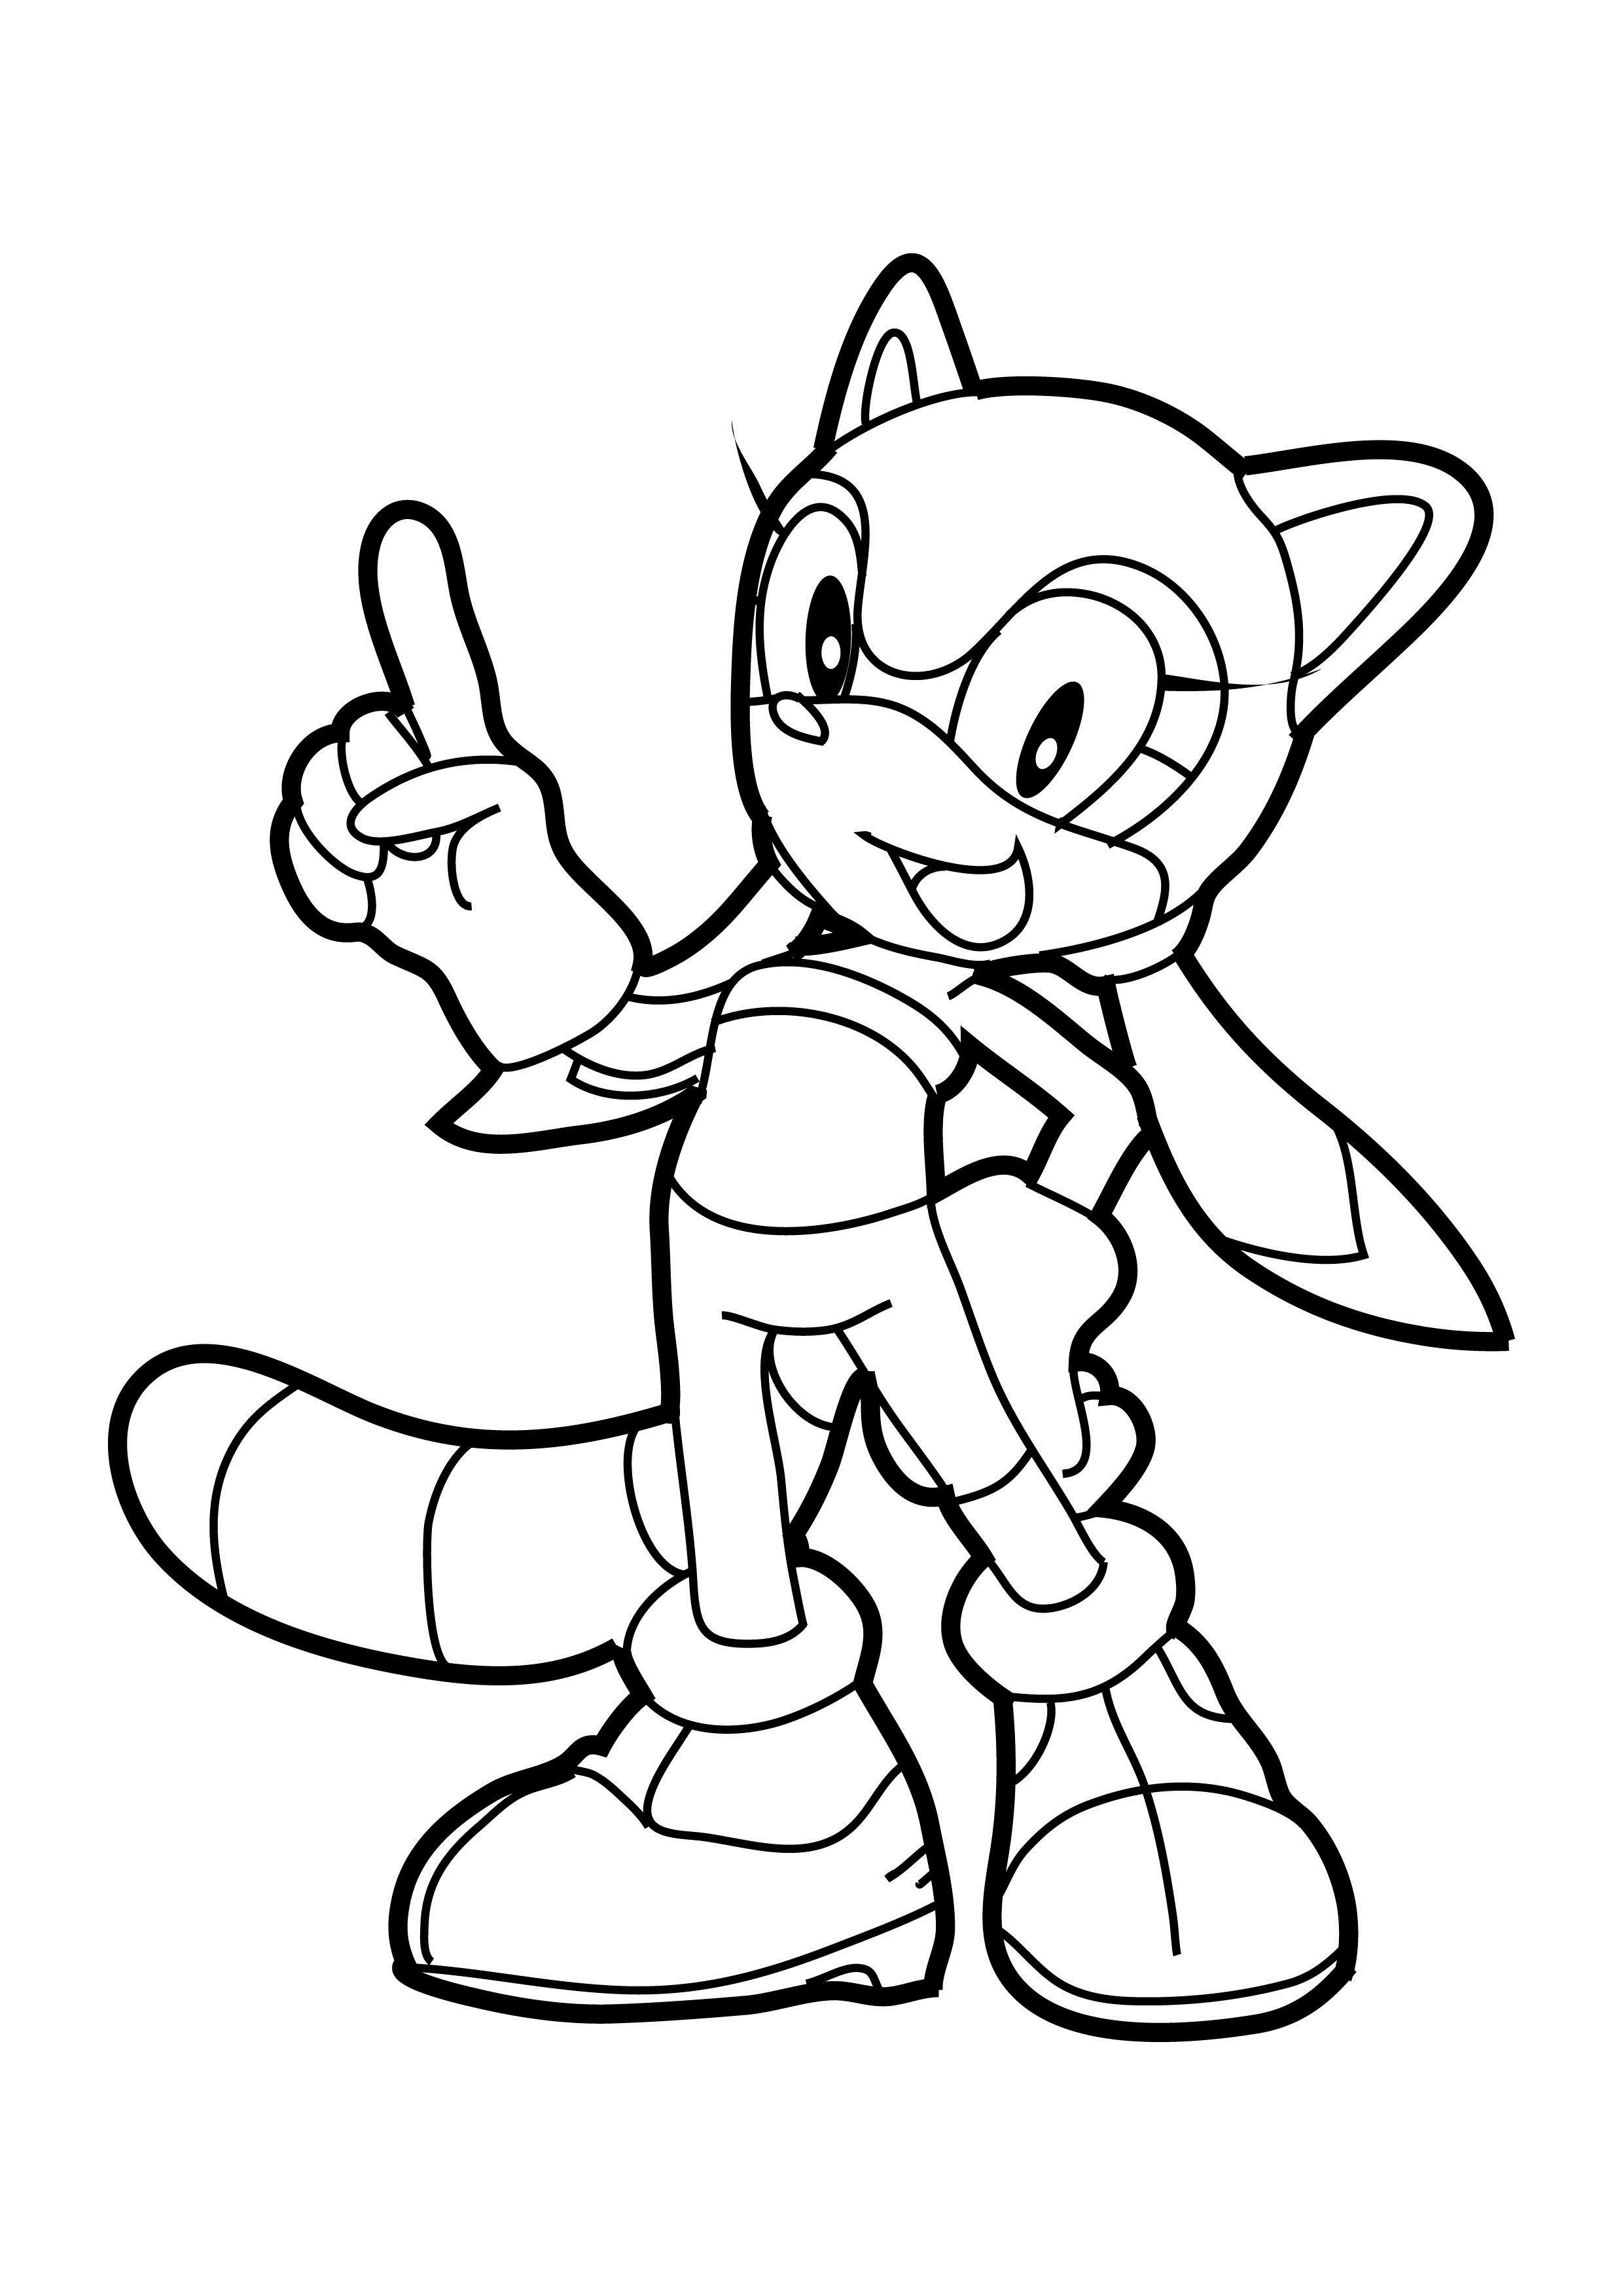 2480x3508 Sonic Hedgehog Characters Coloring Pages Free Printable Sonic